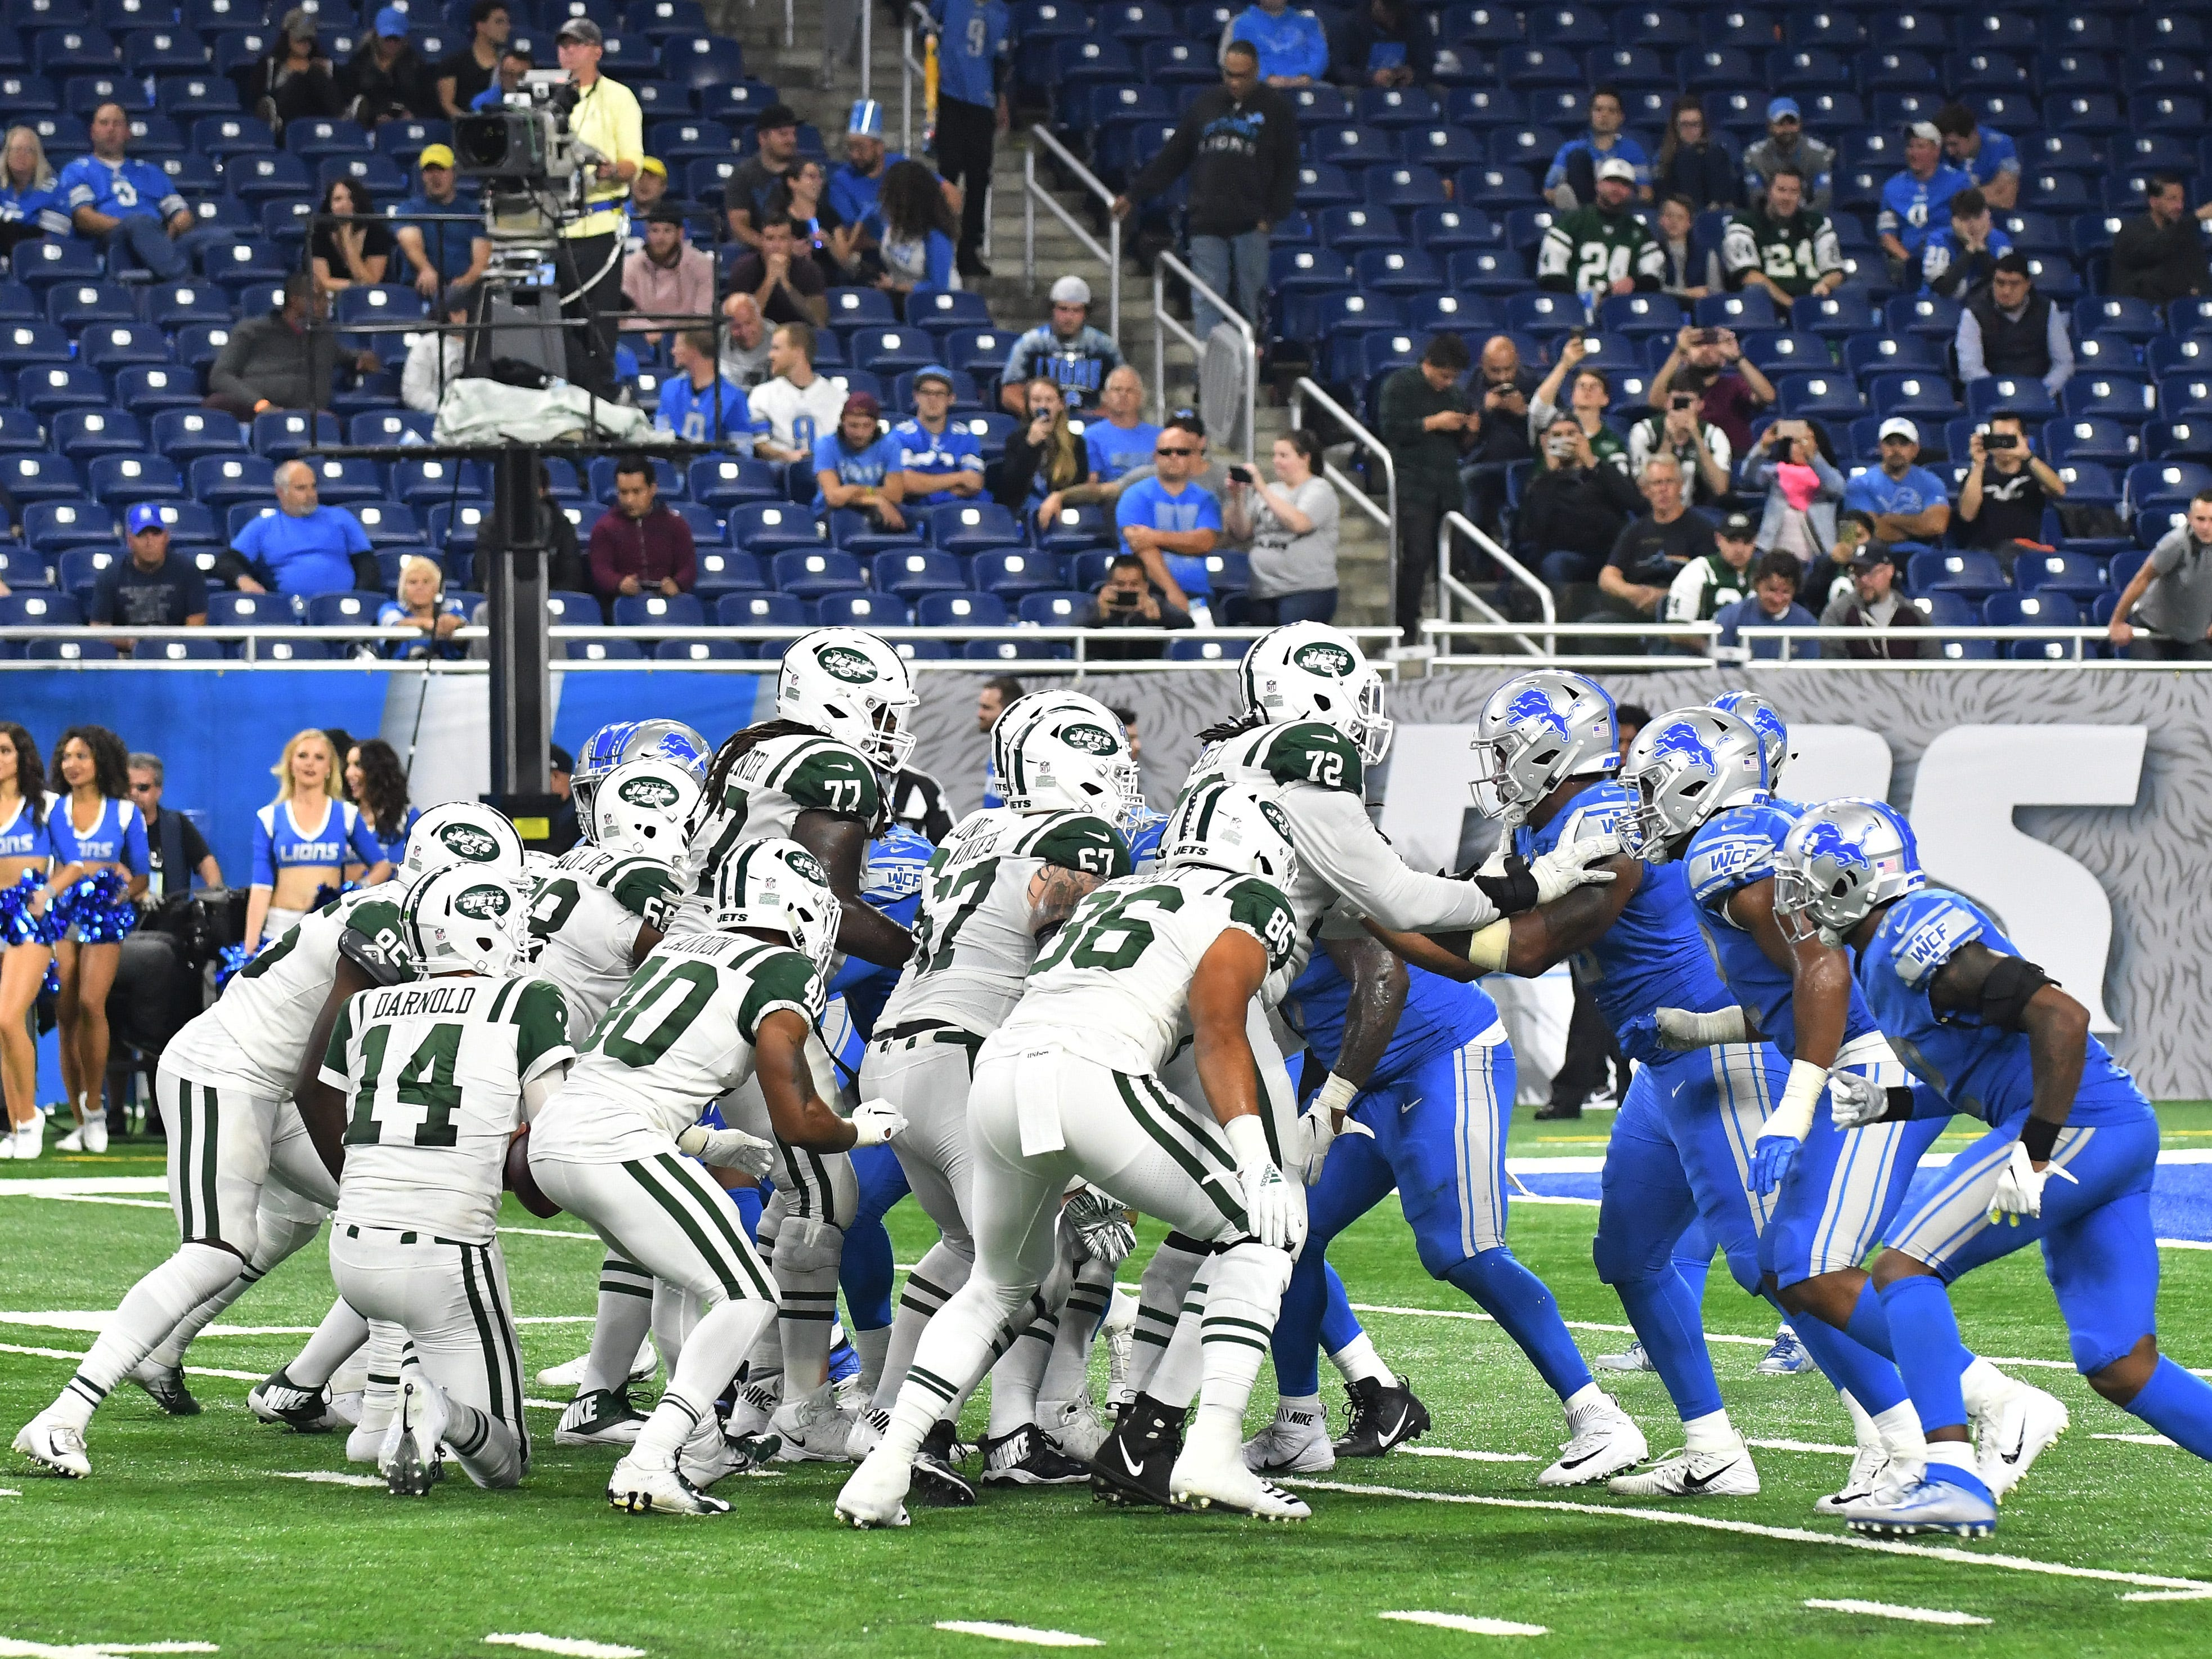 The Jets take a knee, one of four, before turning it over to the Lions, who then took a knee to run out the clock, losing 48-17 in the home opener.